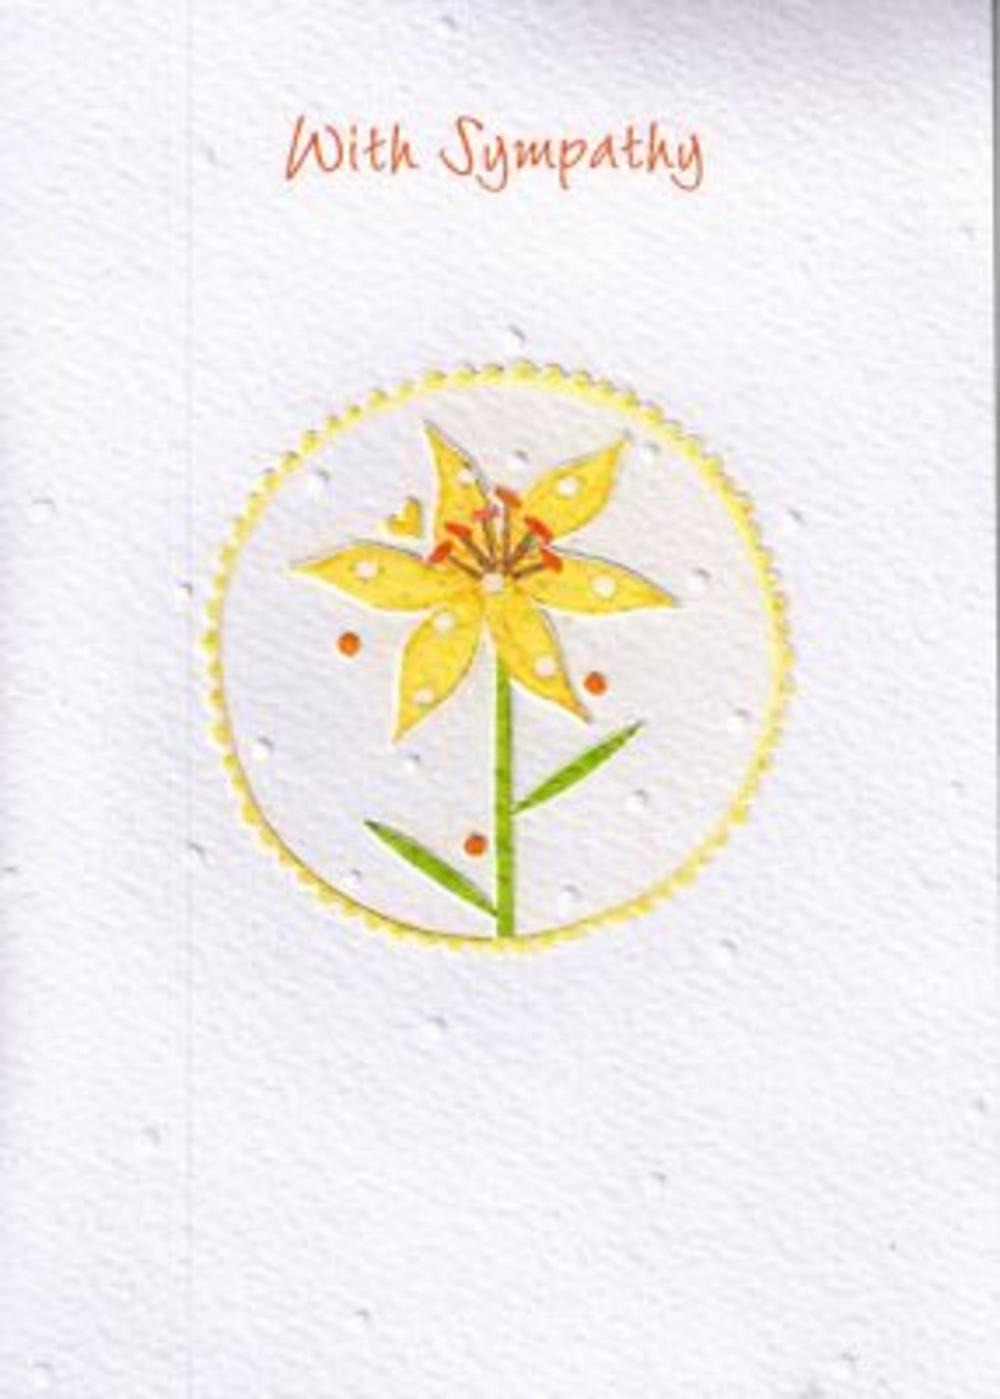 Glittered Simple Sympathy Greeting Card